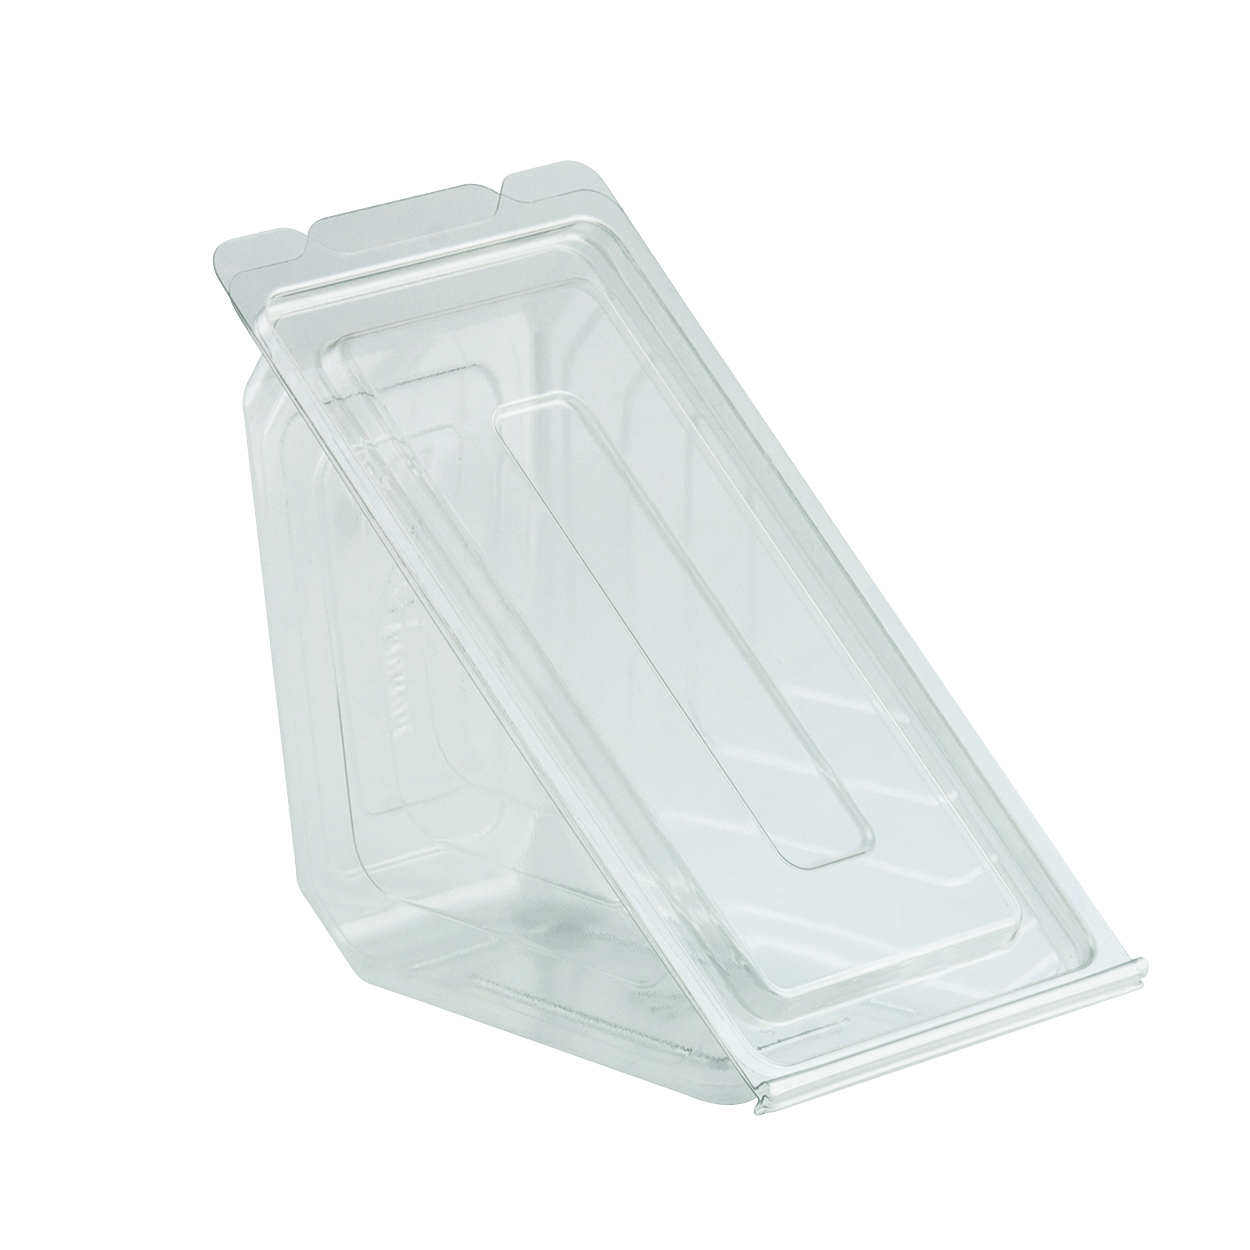 deliviewtm clear hinged sandwich wedge